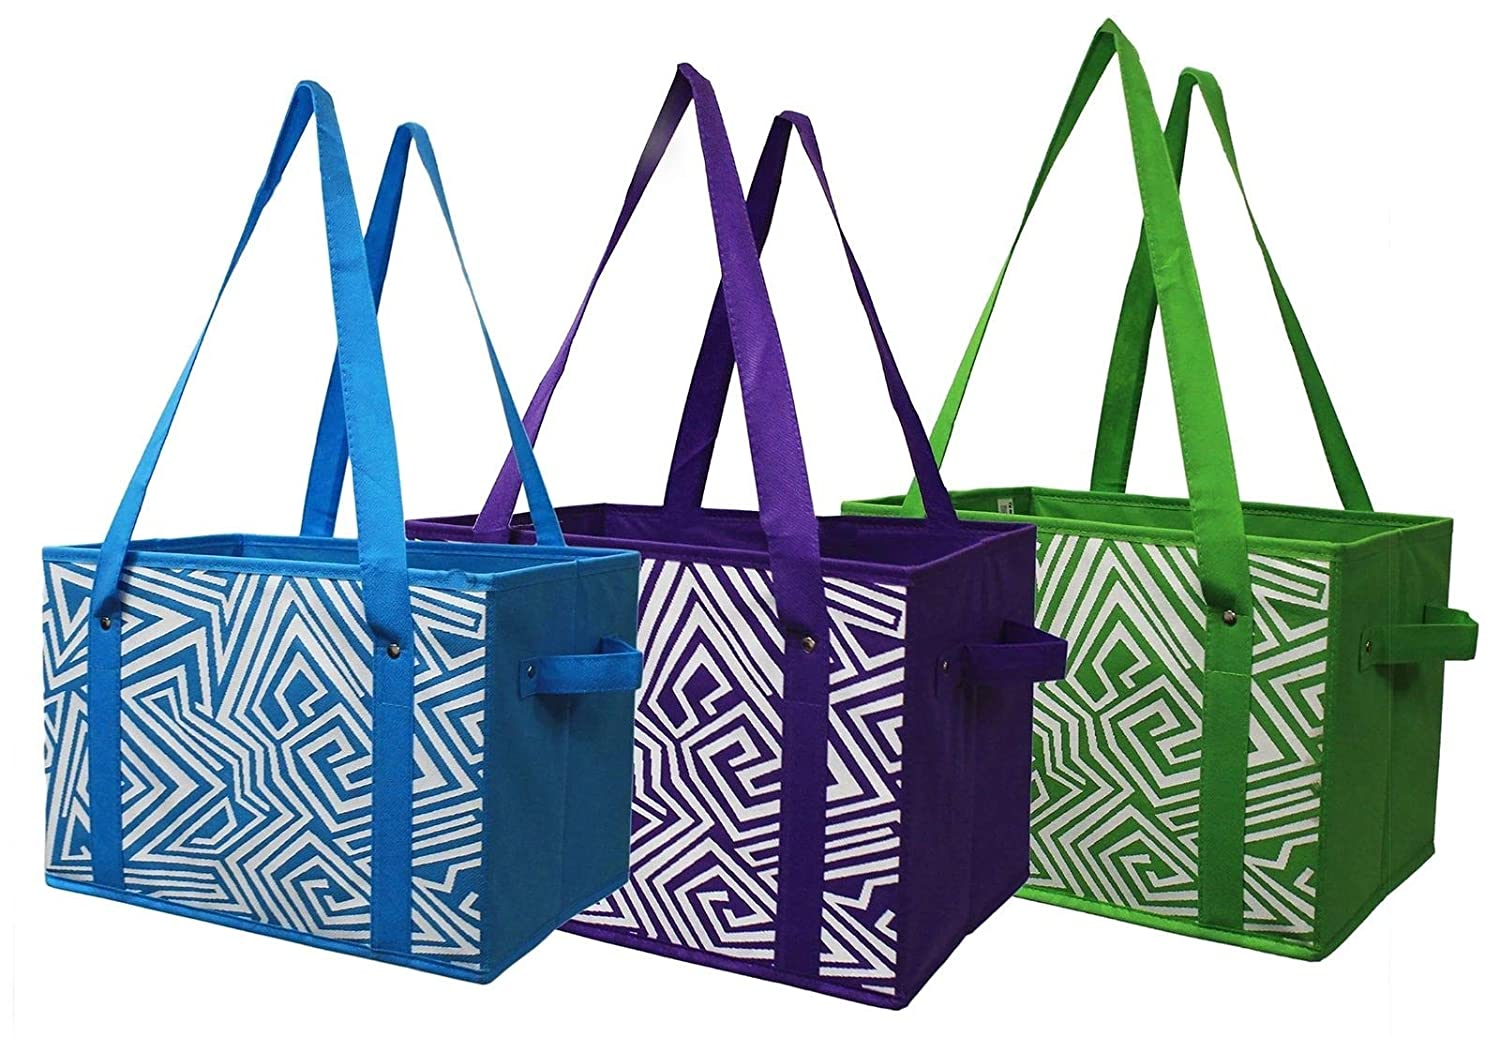 愛用 Earthwise Reusable Grocery Bag Shopping Box Tote COLLAPSIBLE Colours BAG Bag Earthwise with Reinforced Bottom in 3 Bright Colours (Set of 3) B0711K553G, フィットネス&サプリメントのMW:542b4629 --- 4x4.lt